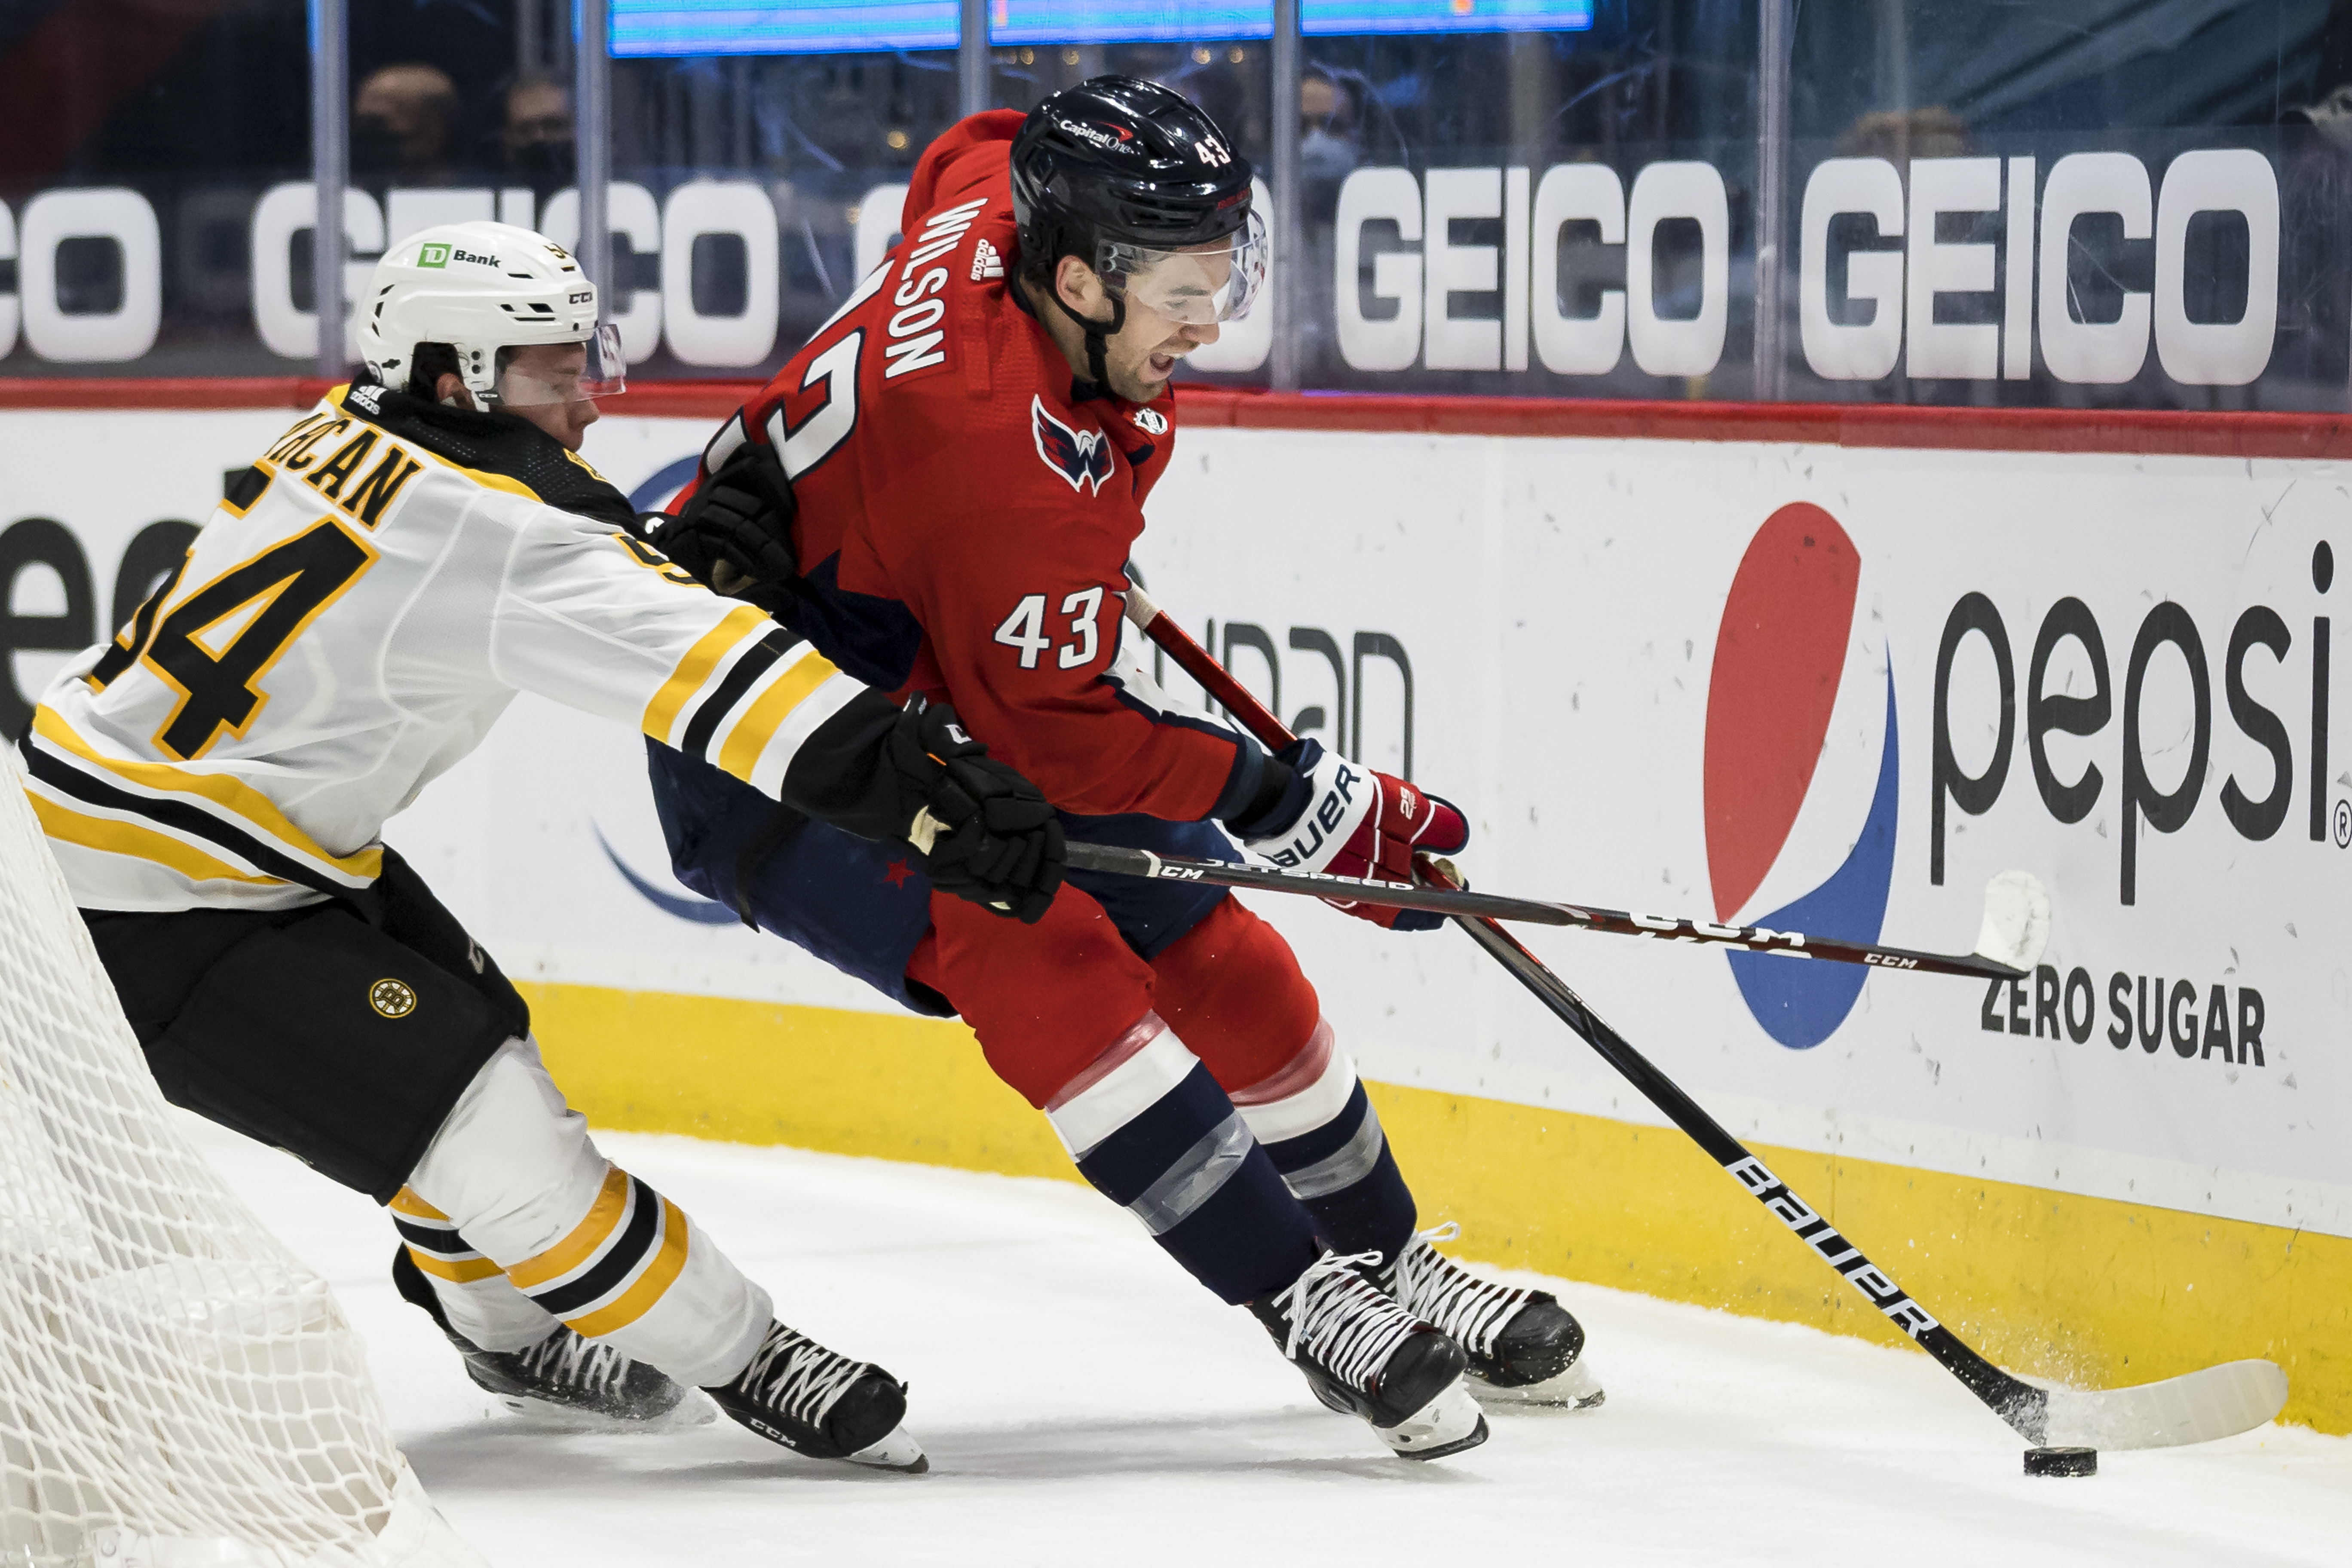 Tom Wilson #43 of the Washington Capitals skates with the puck in front of Jack Ahcan #54 of the Boston Bruins during the second period of the game at Capital One Arena on May 11, 2021 in Washington, DC.